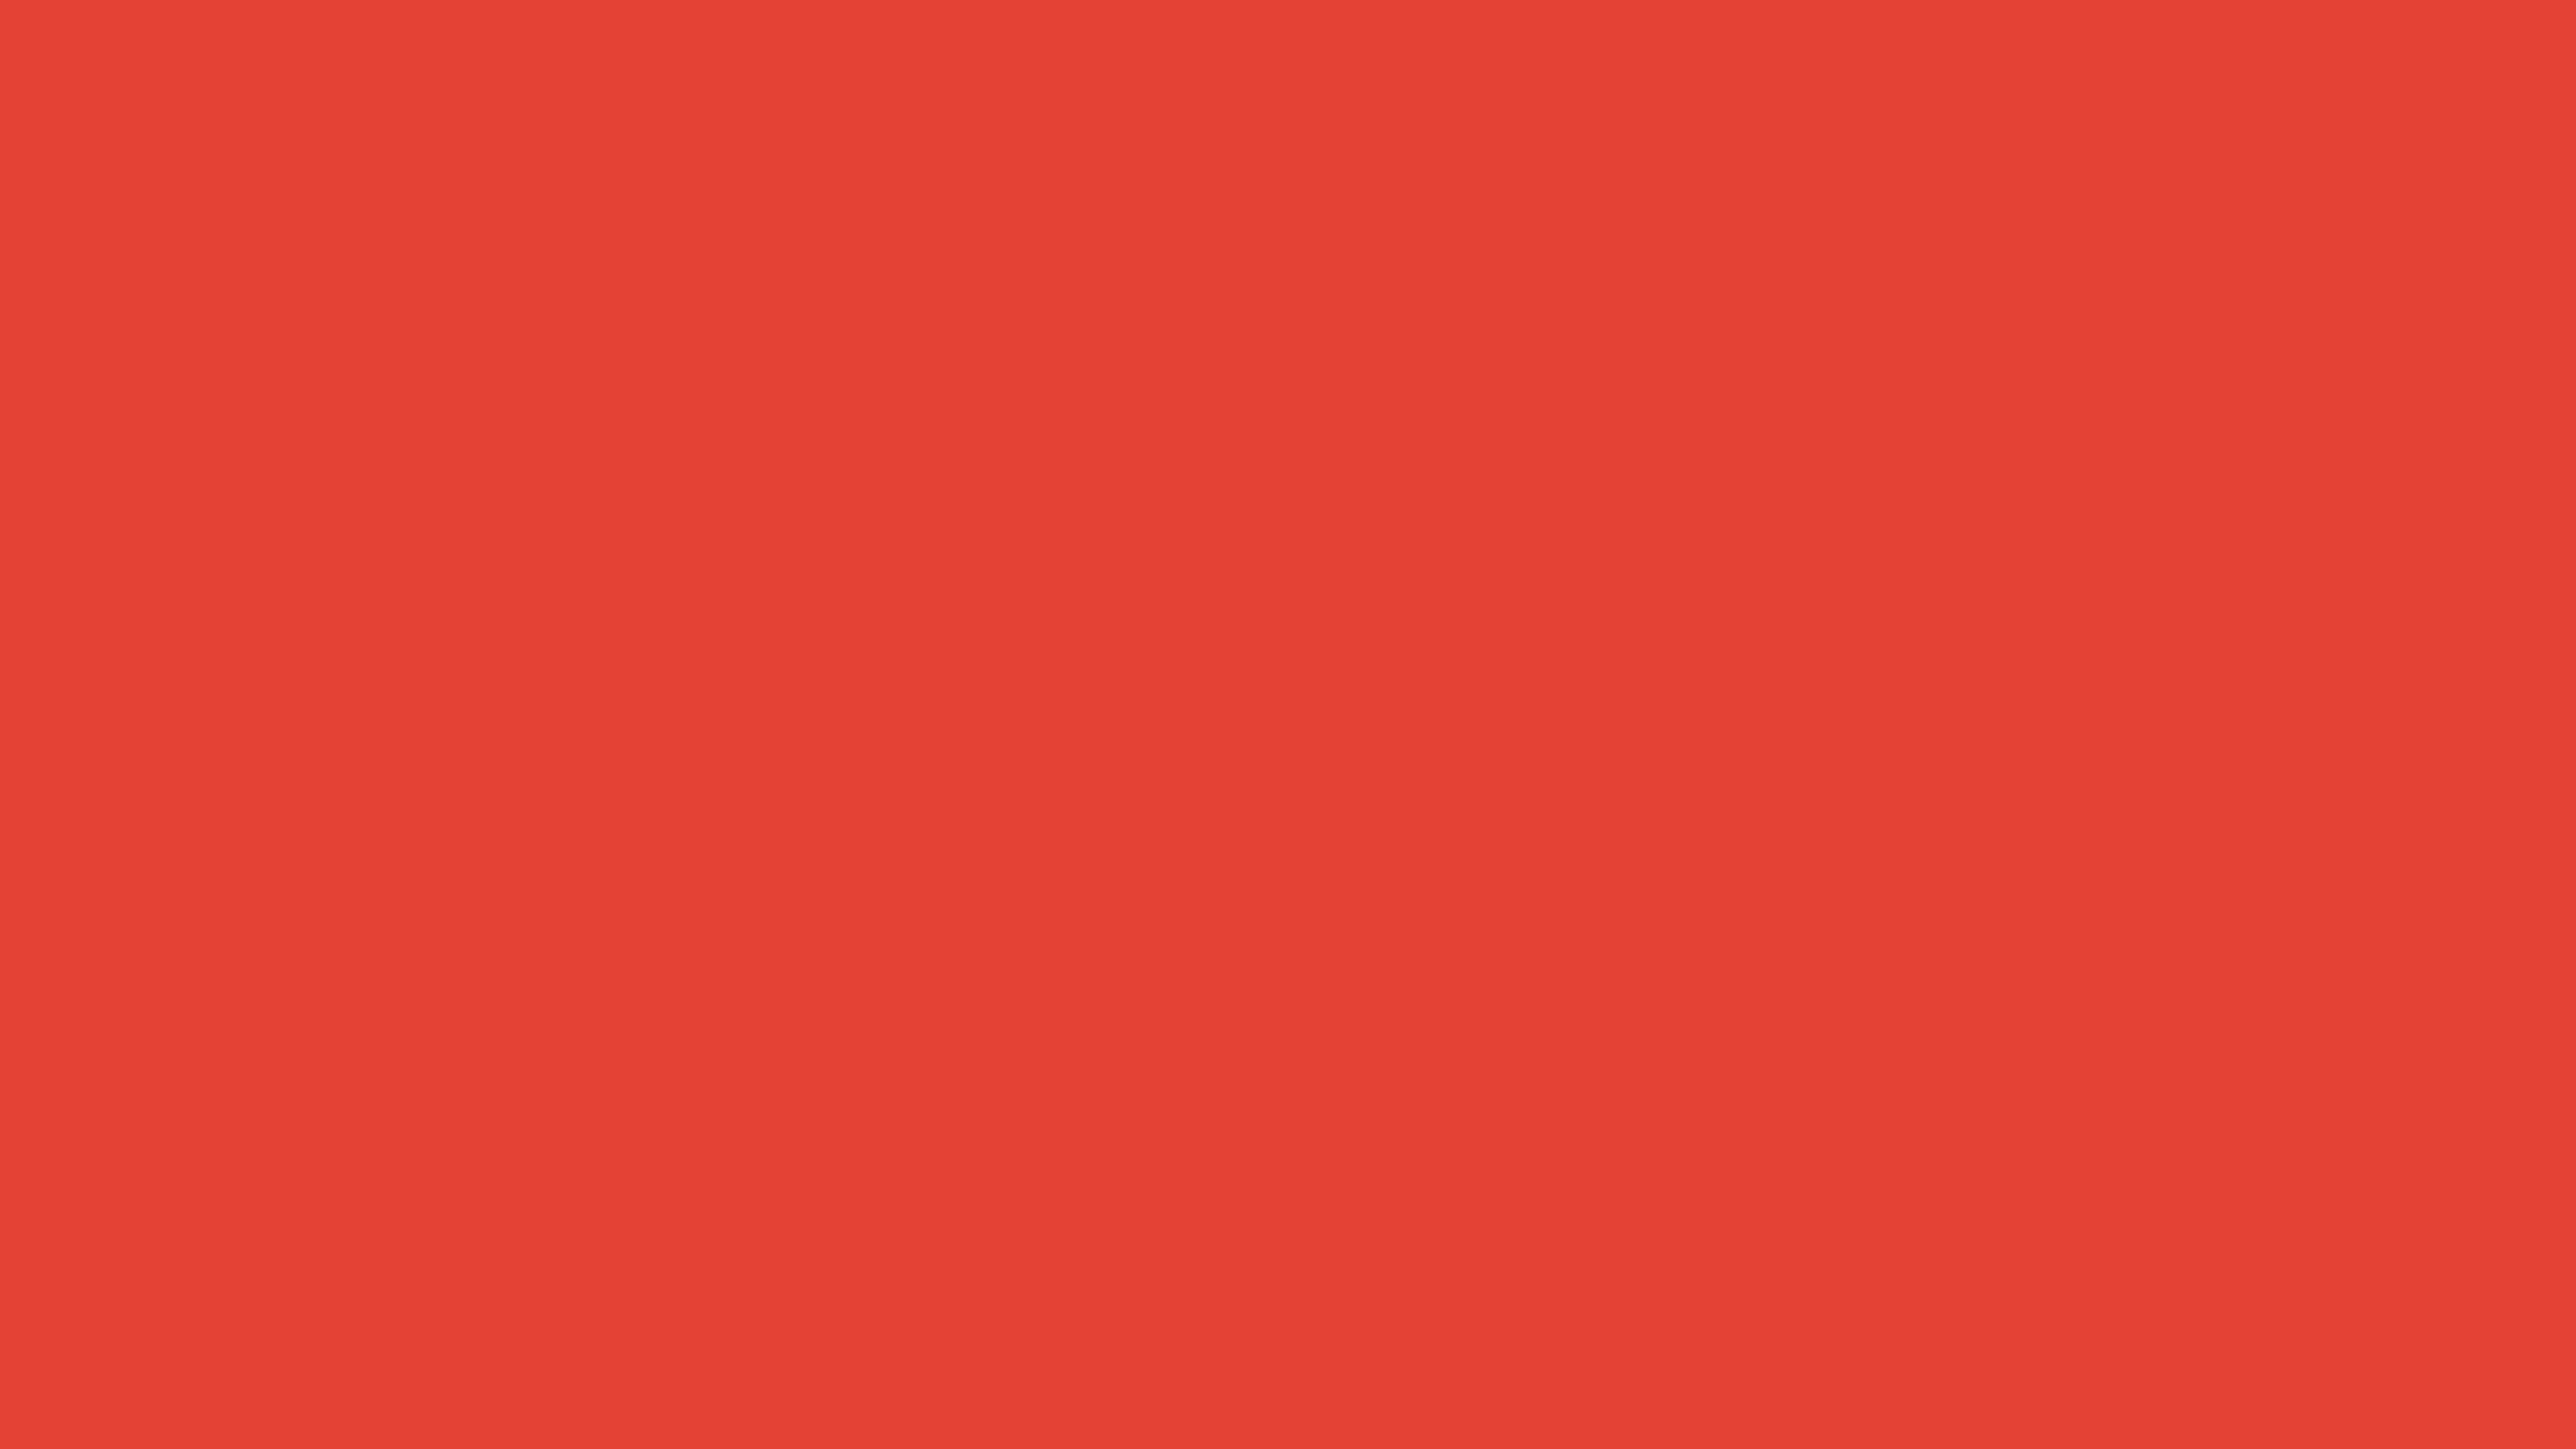 3840x2160 Cinnabar Solid Color Background